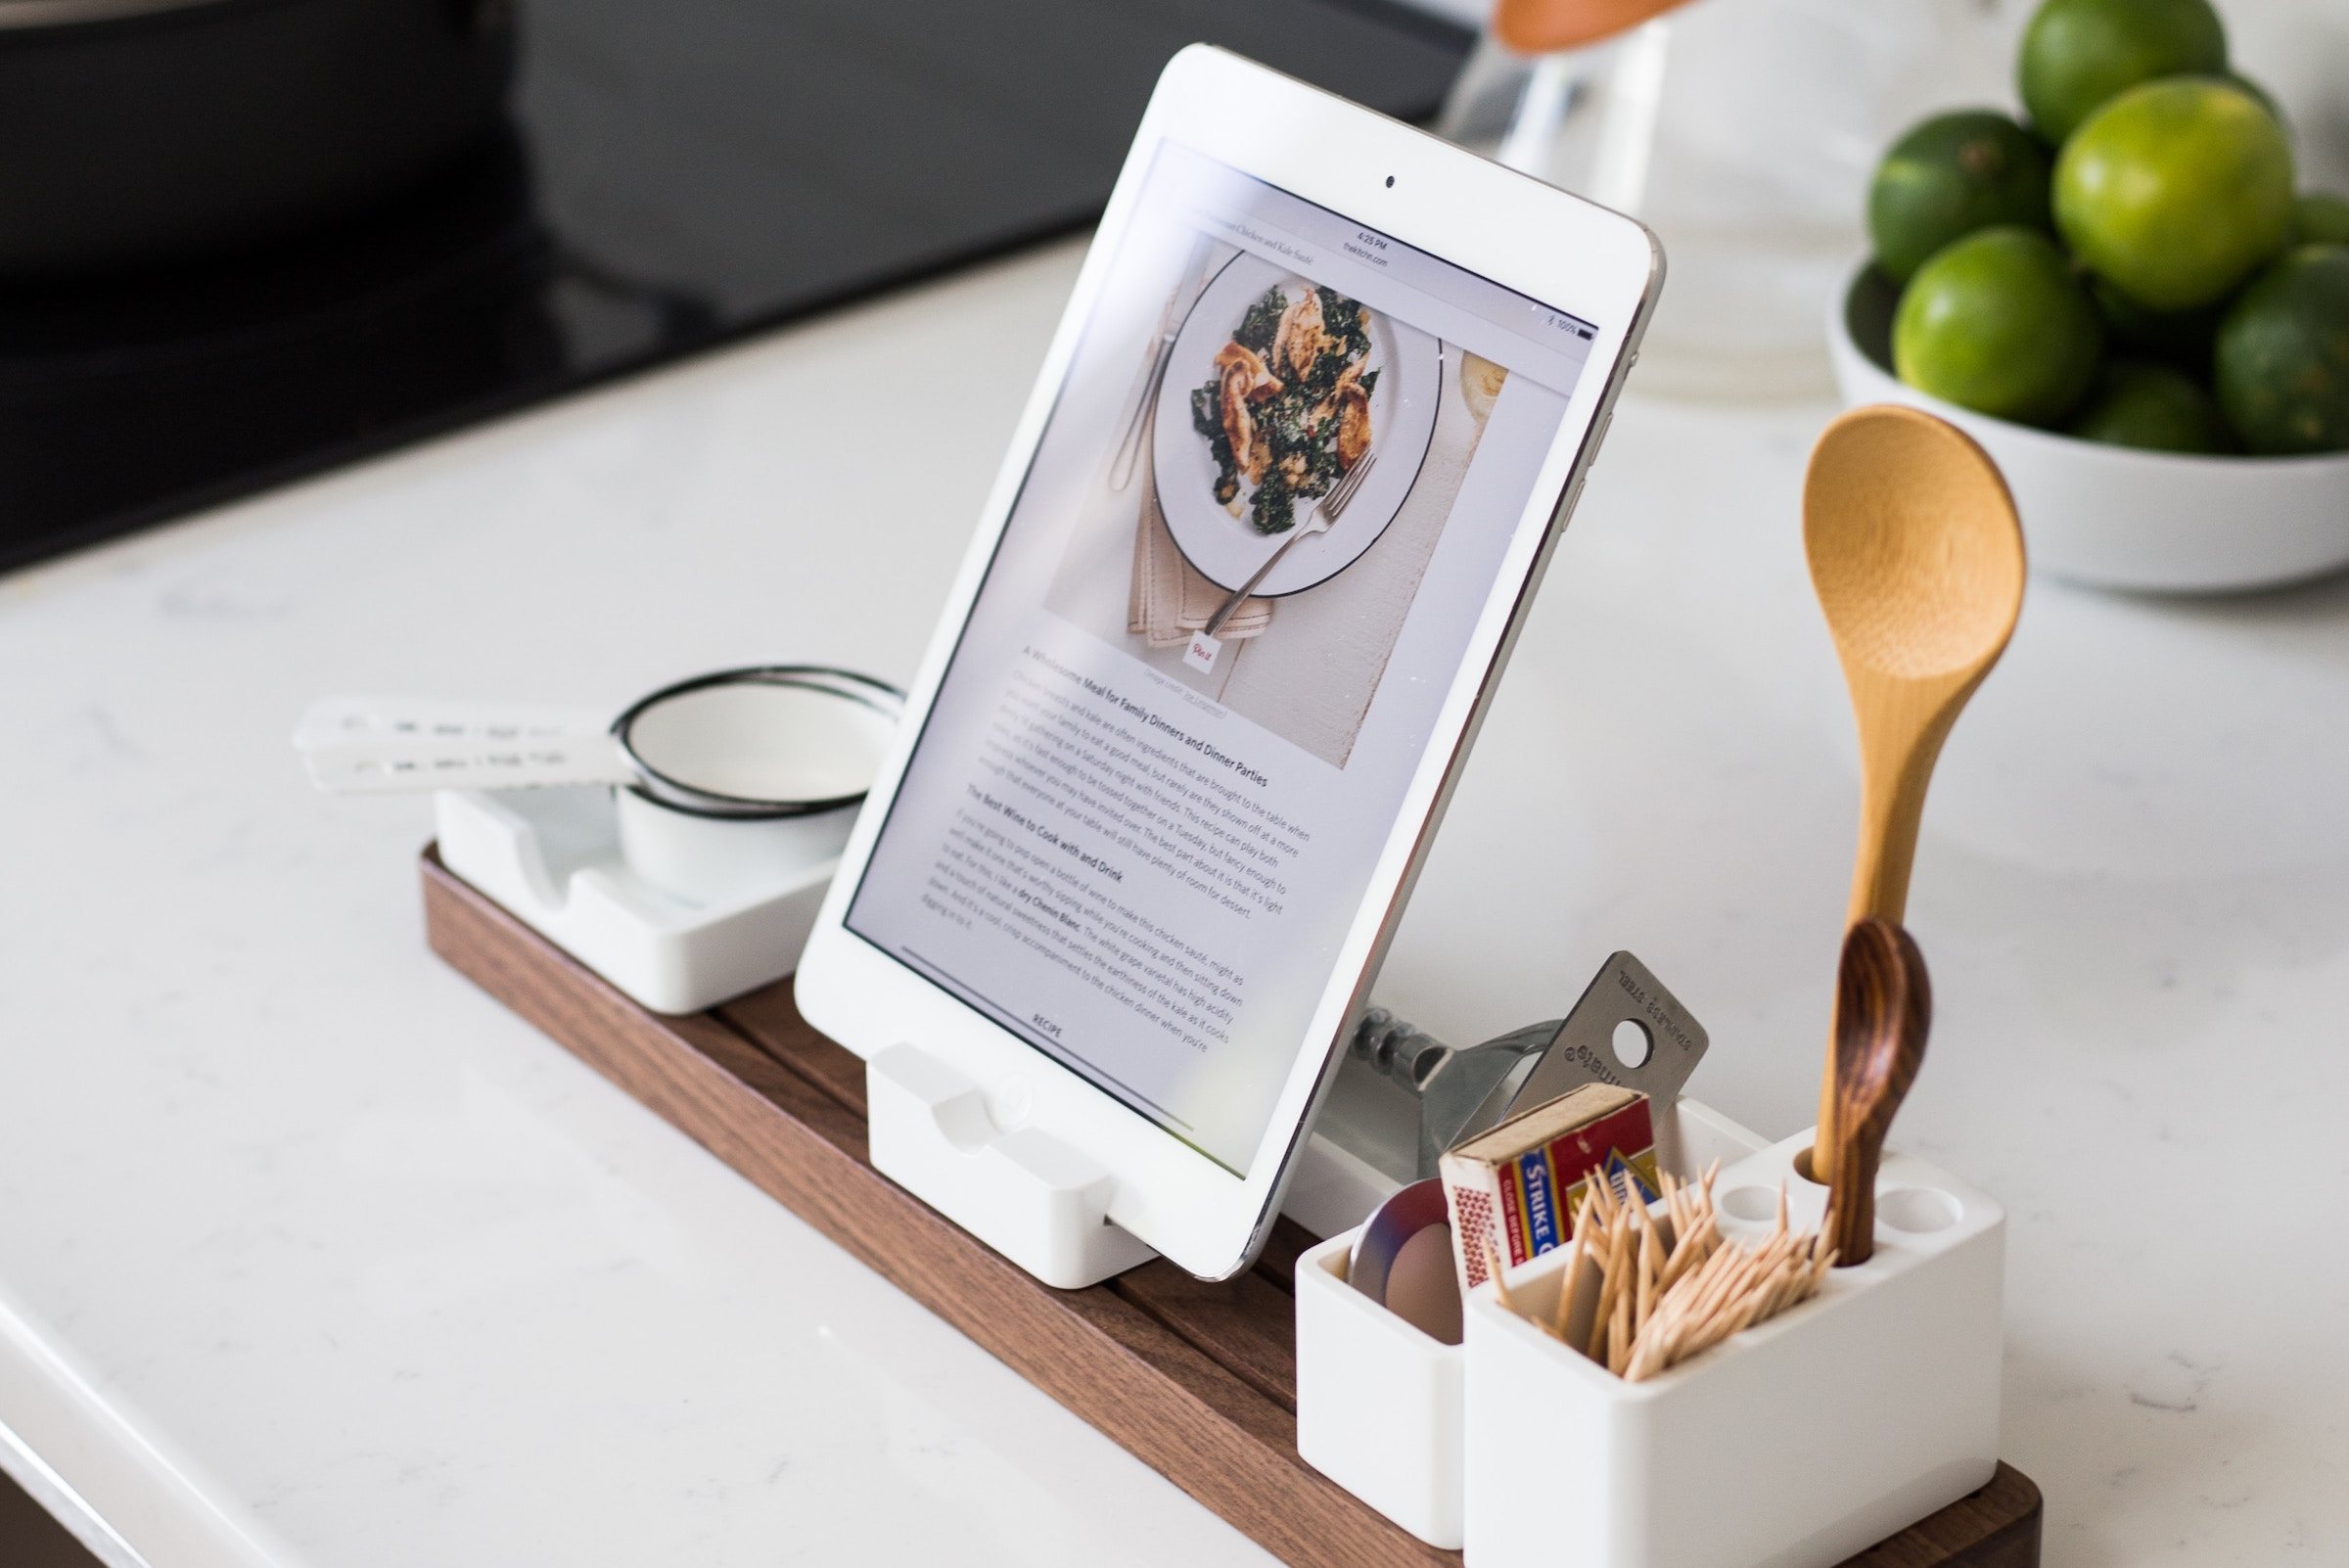 Are you on board with the smart home kitchen design trend?